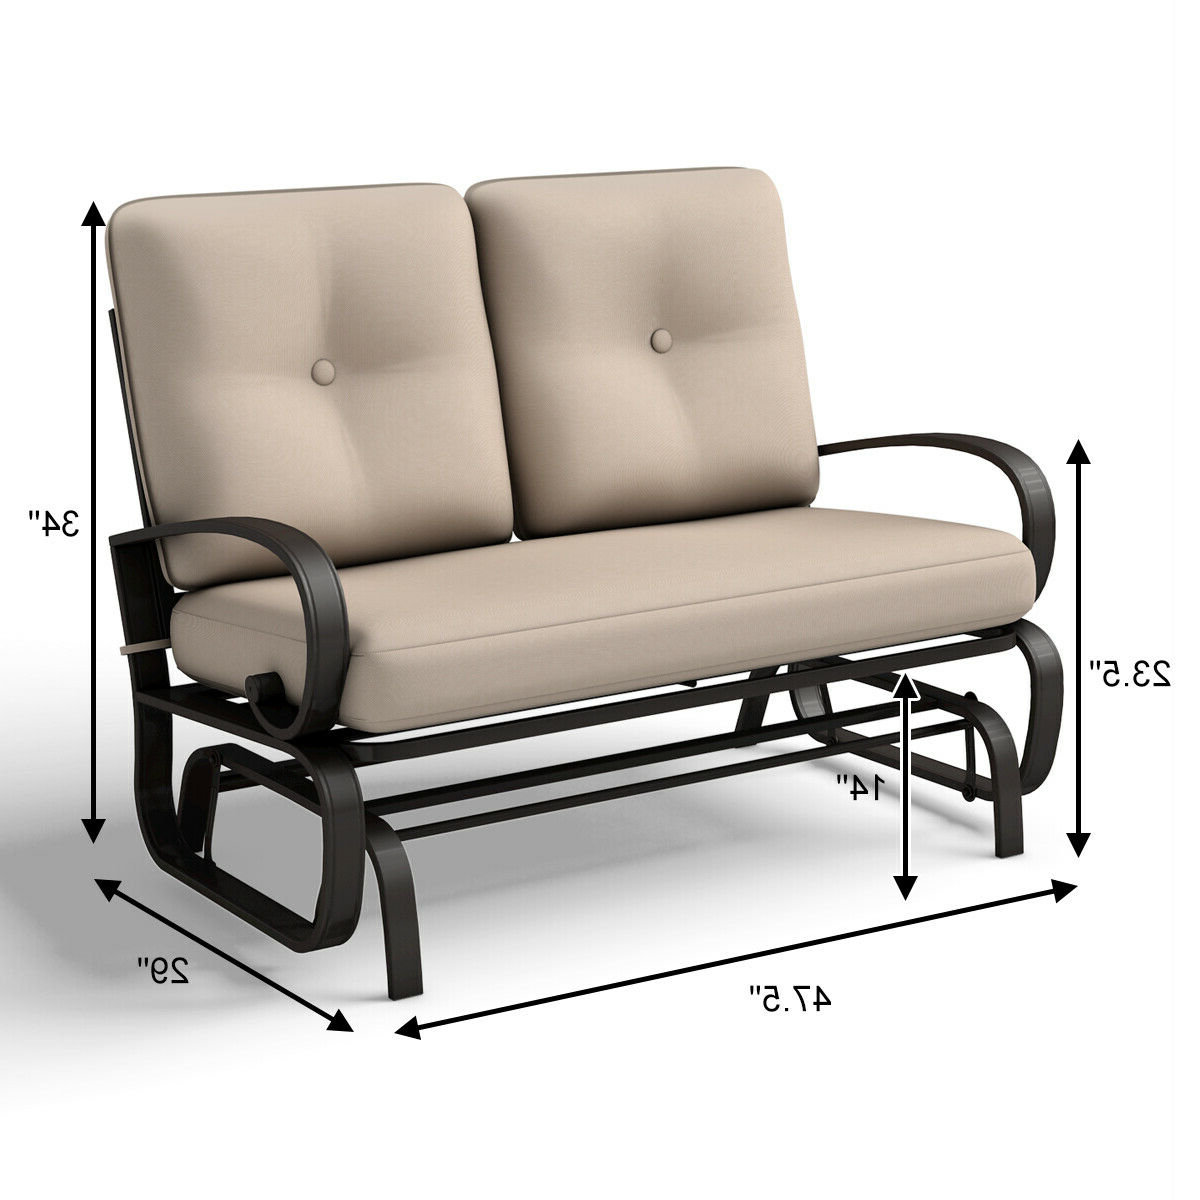 Widely Used Rocking Love Seats Glider Swing Benches With Sturdy Frame In Glider Outdoor Patio Rocking Bench Loveseat Cushioned Seat Steel Frame Furniture (View 5 of 25)